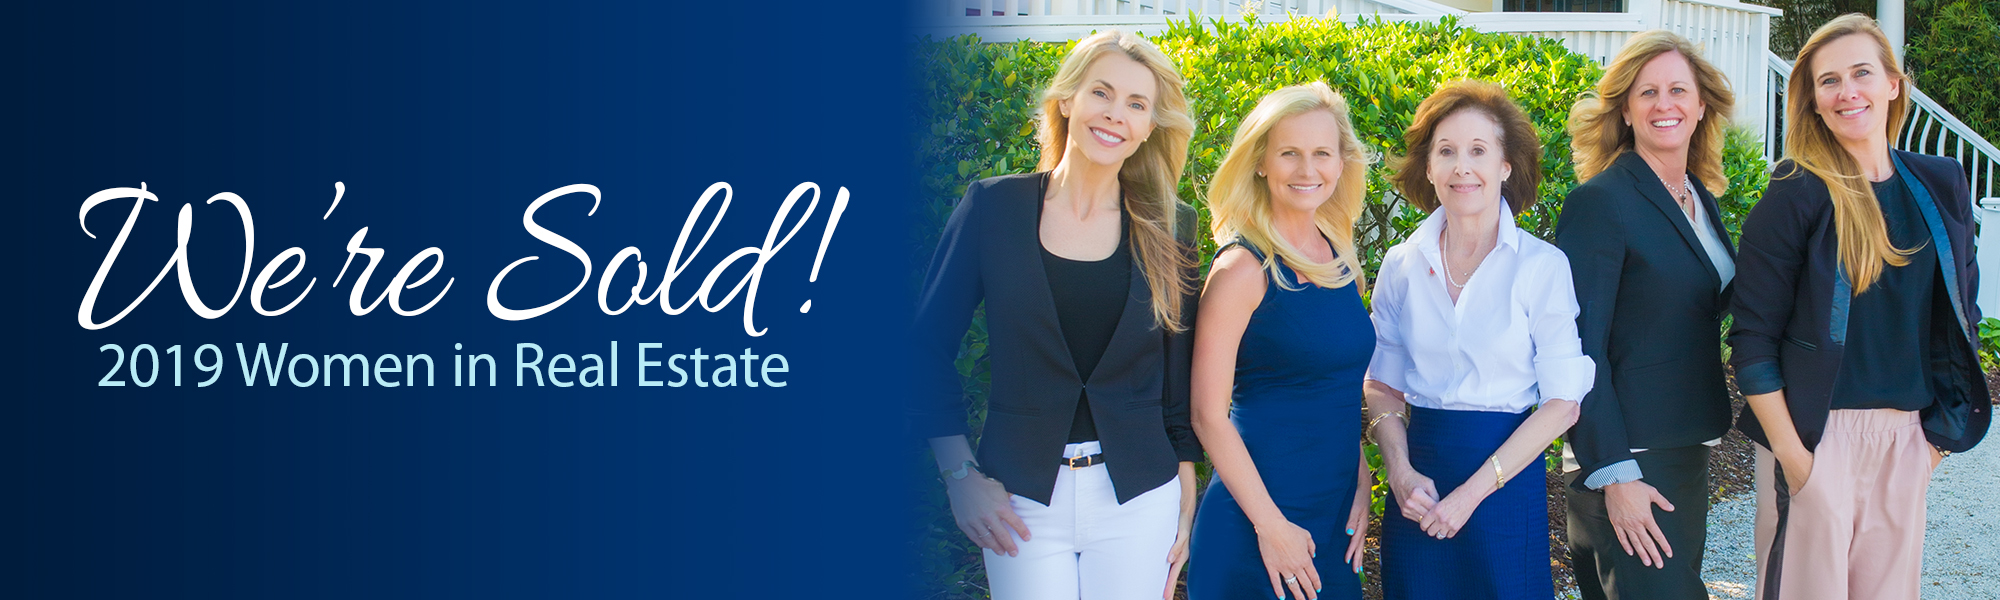 Read about Charleston's Women in Real Estate